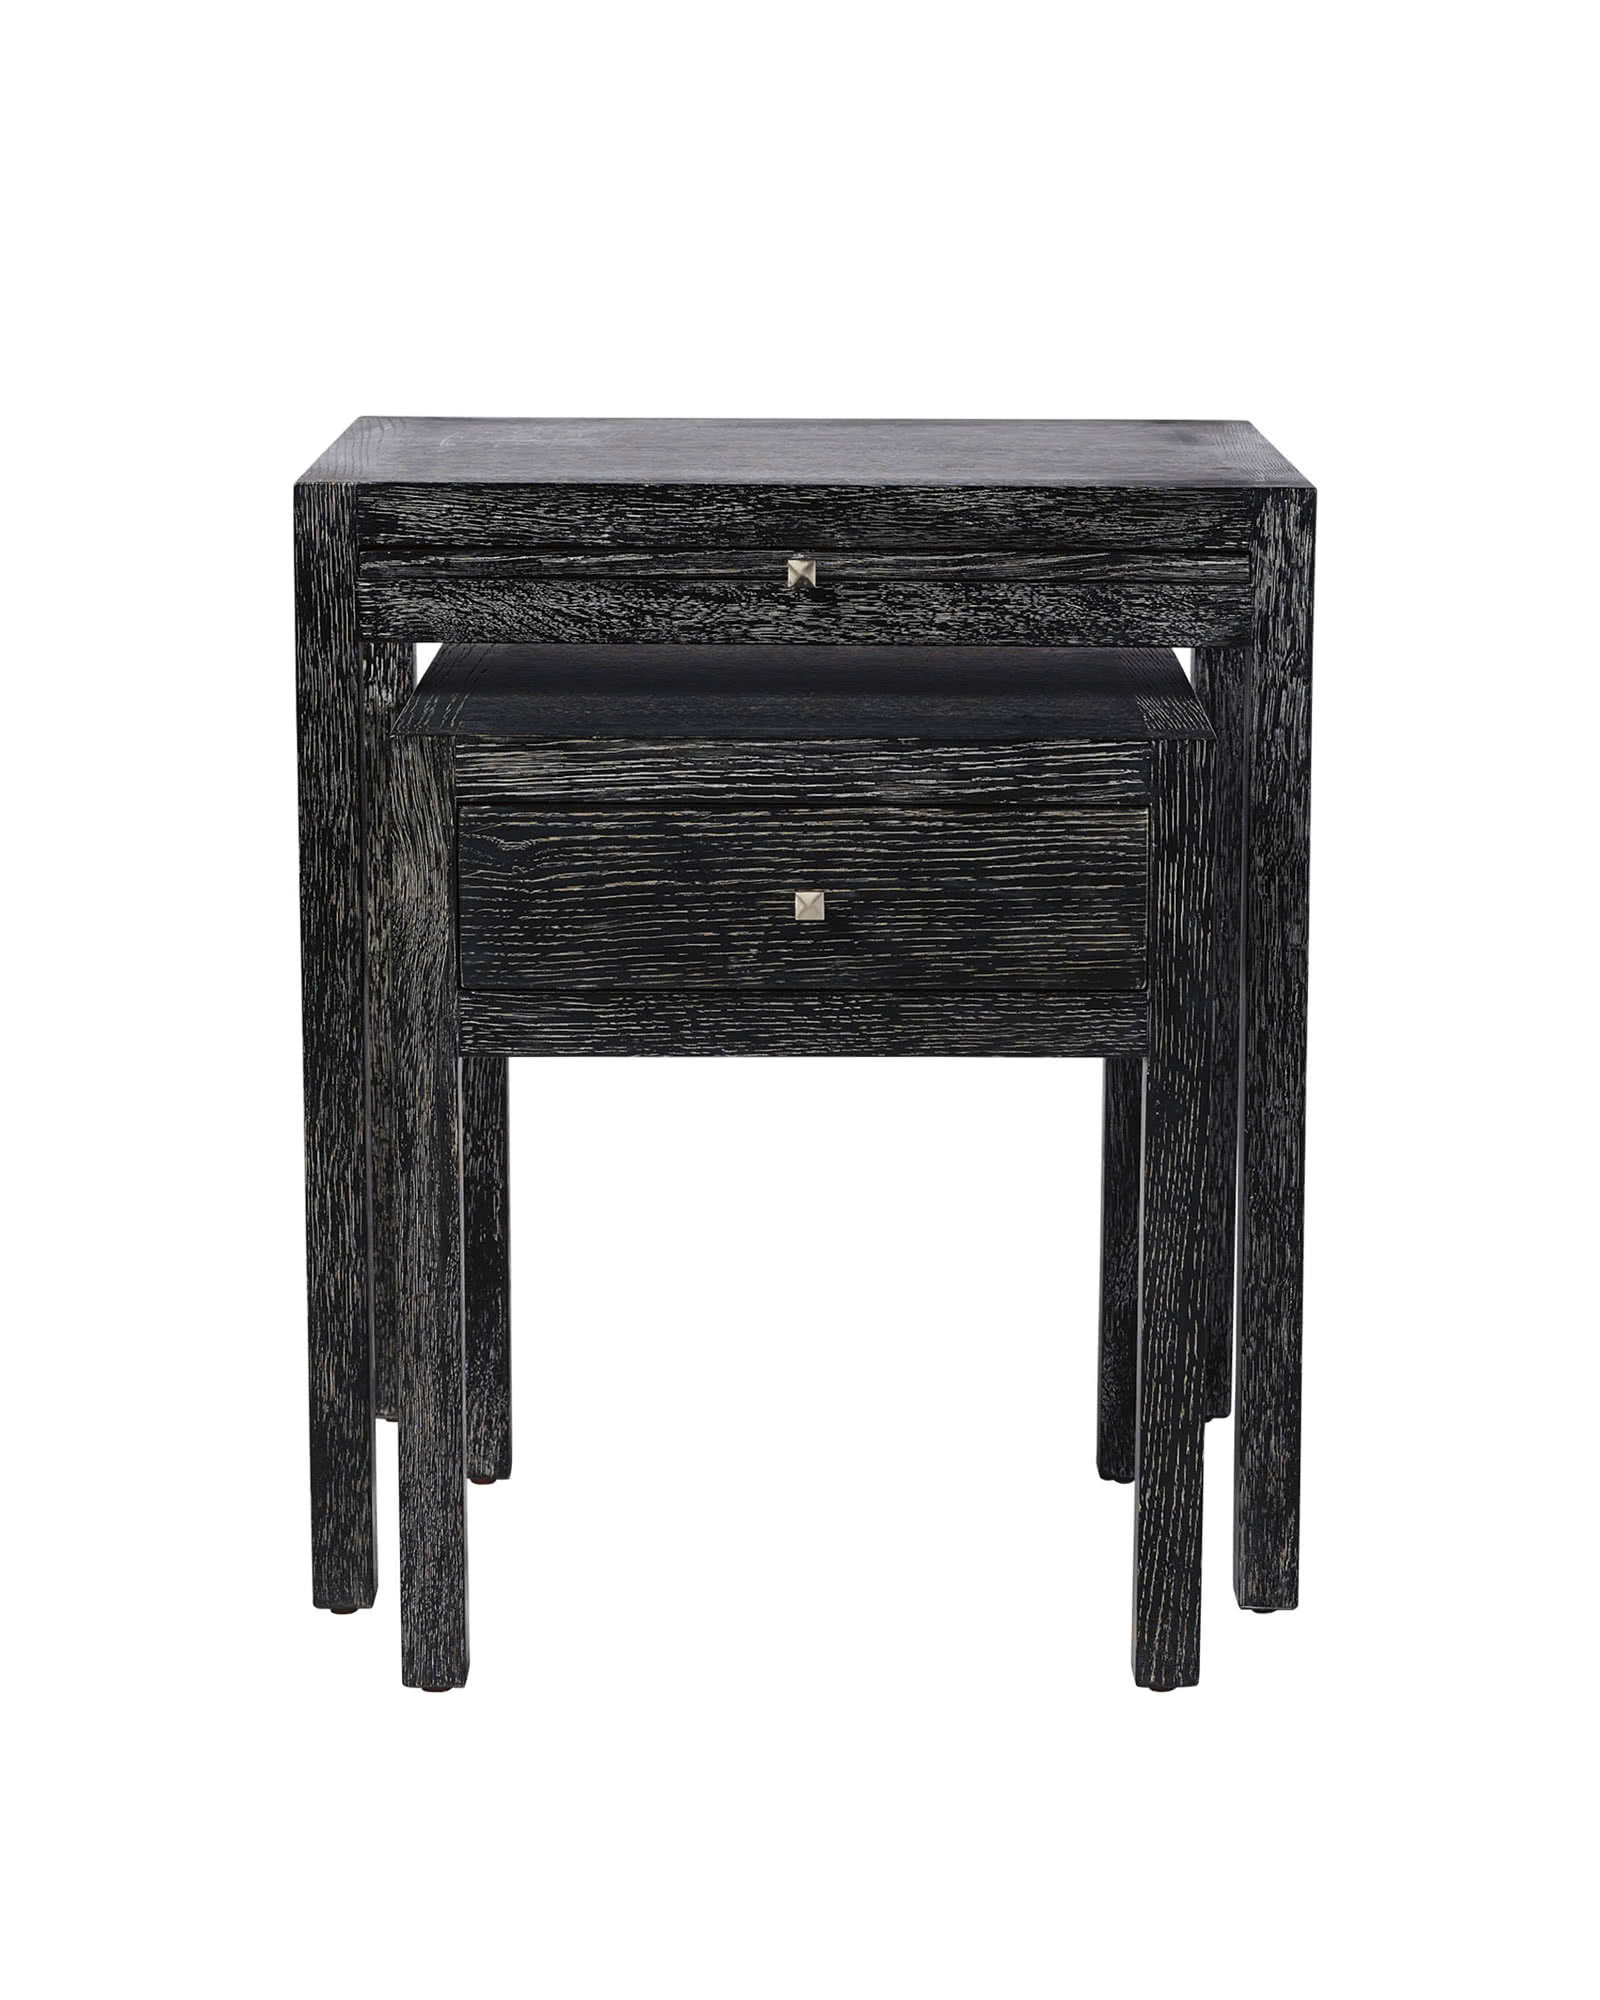 Rowe Nesting Tables Serena Lily - Nesting table with drawer